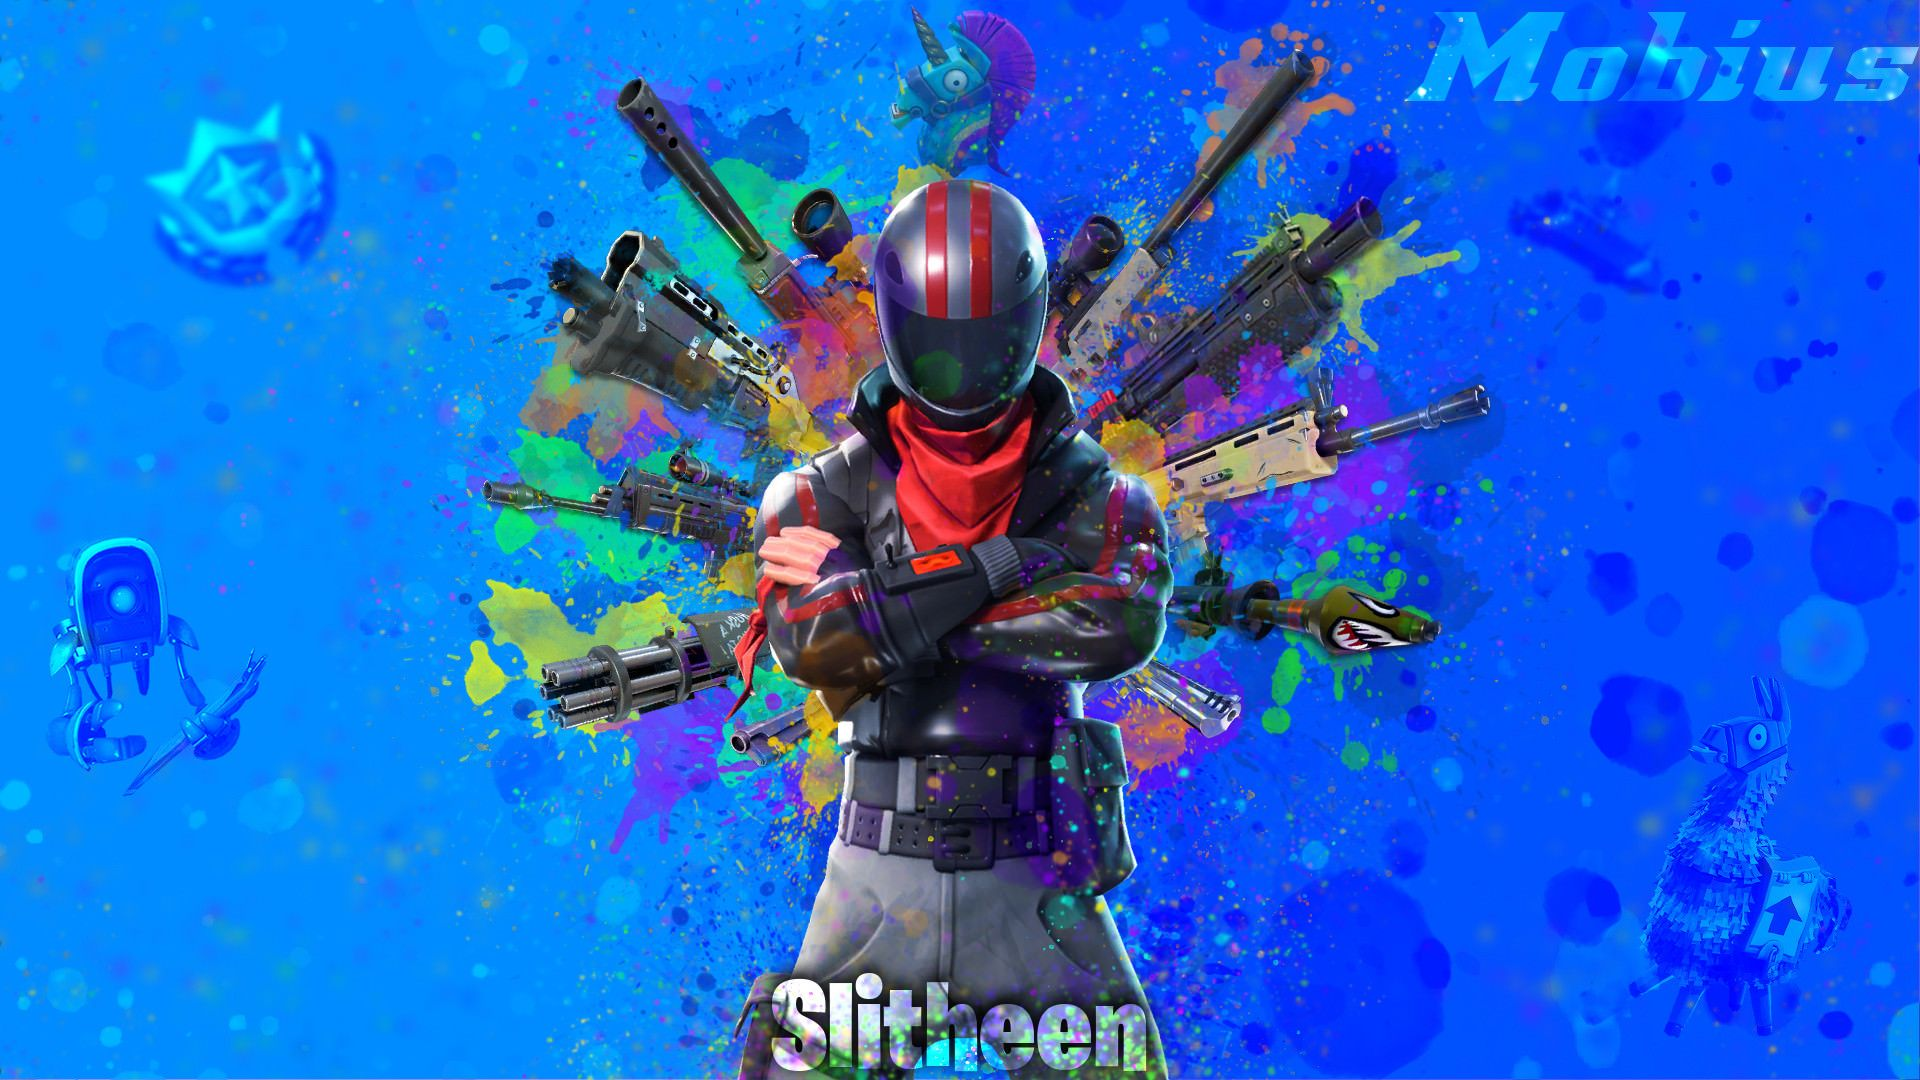 Fortnite Wallpaper 1920x1080 Need trendy iPhone7 iphone7Plus 1920x1080